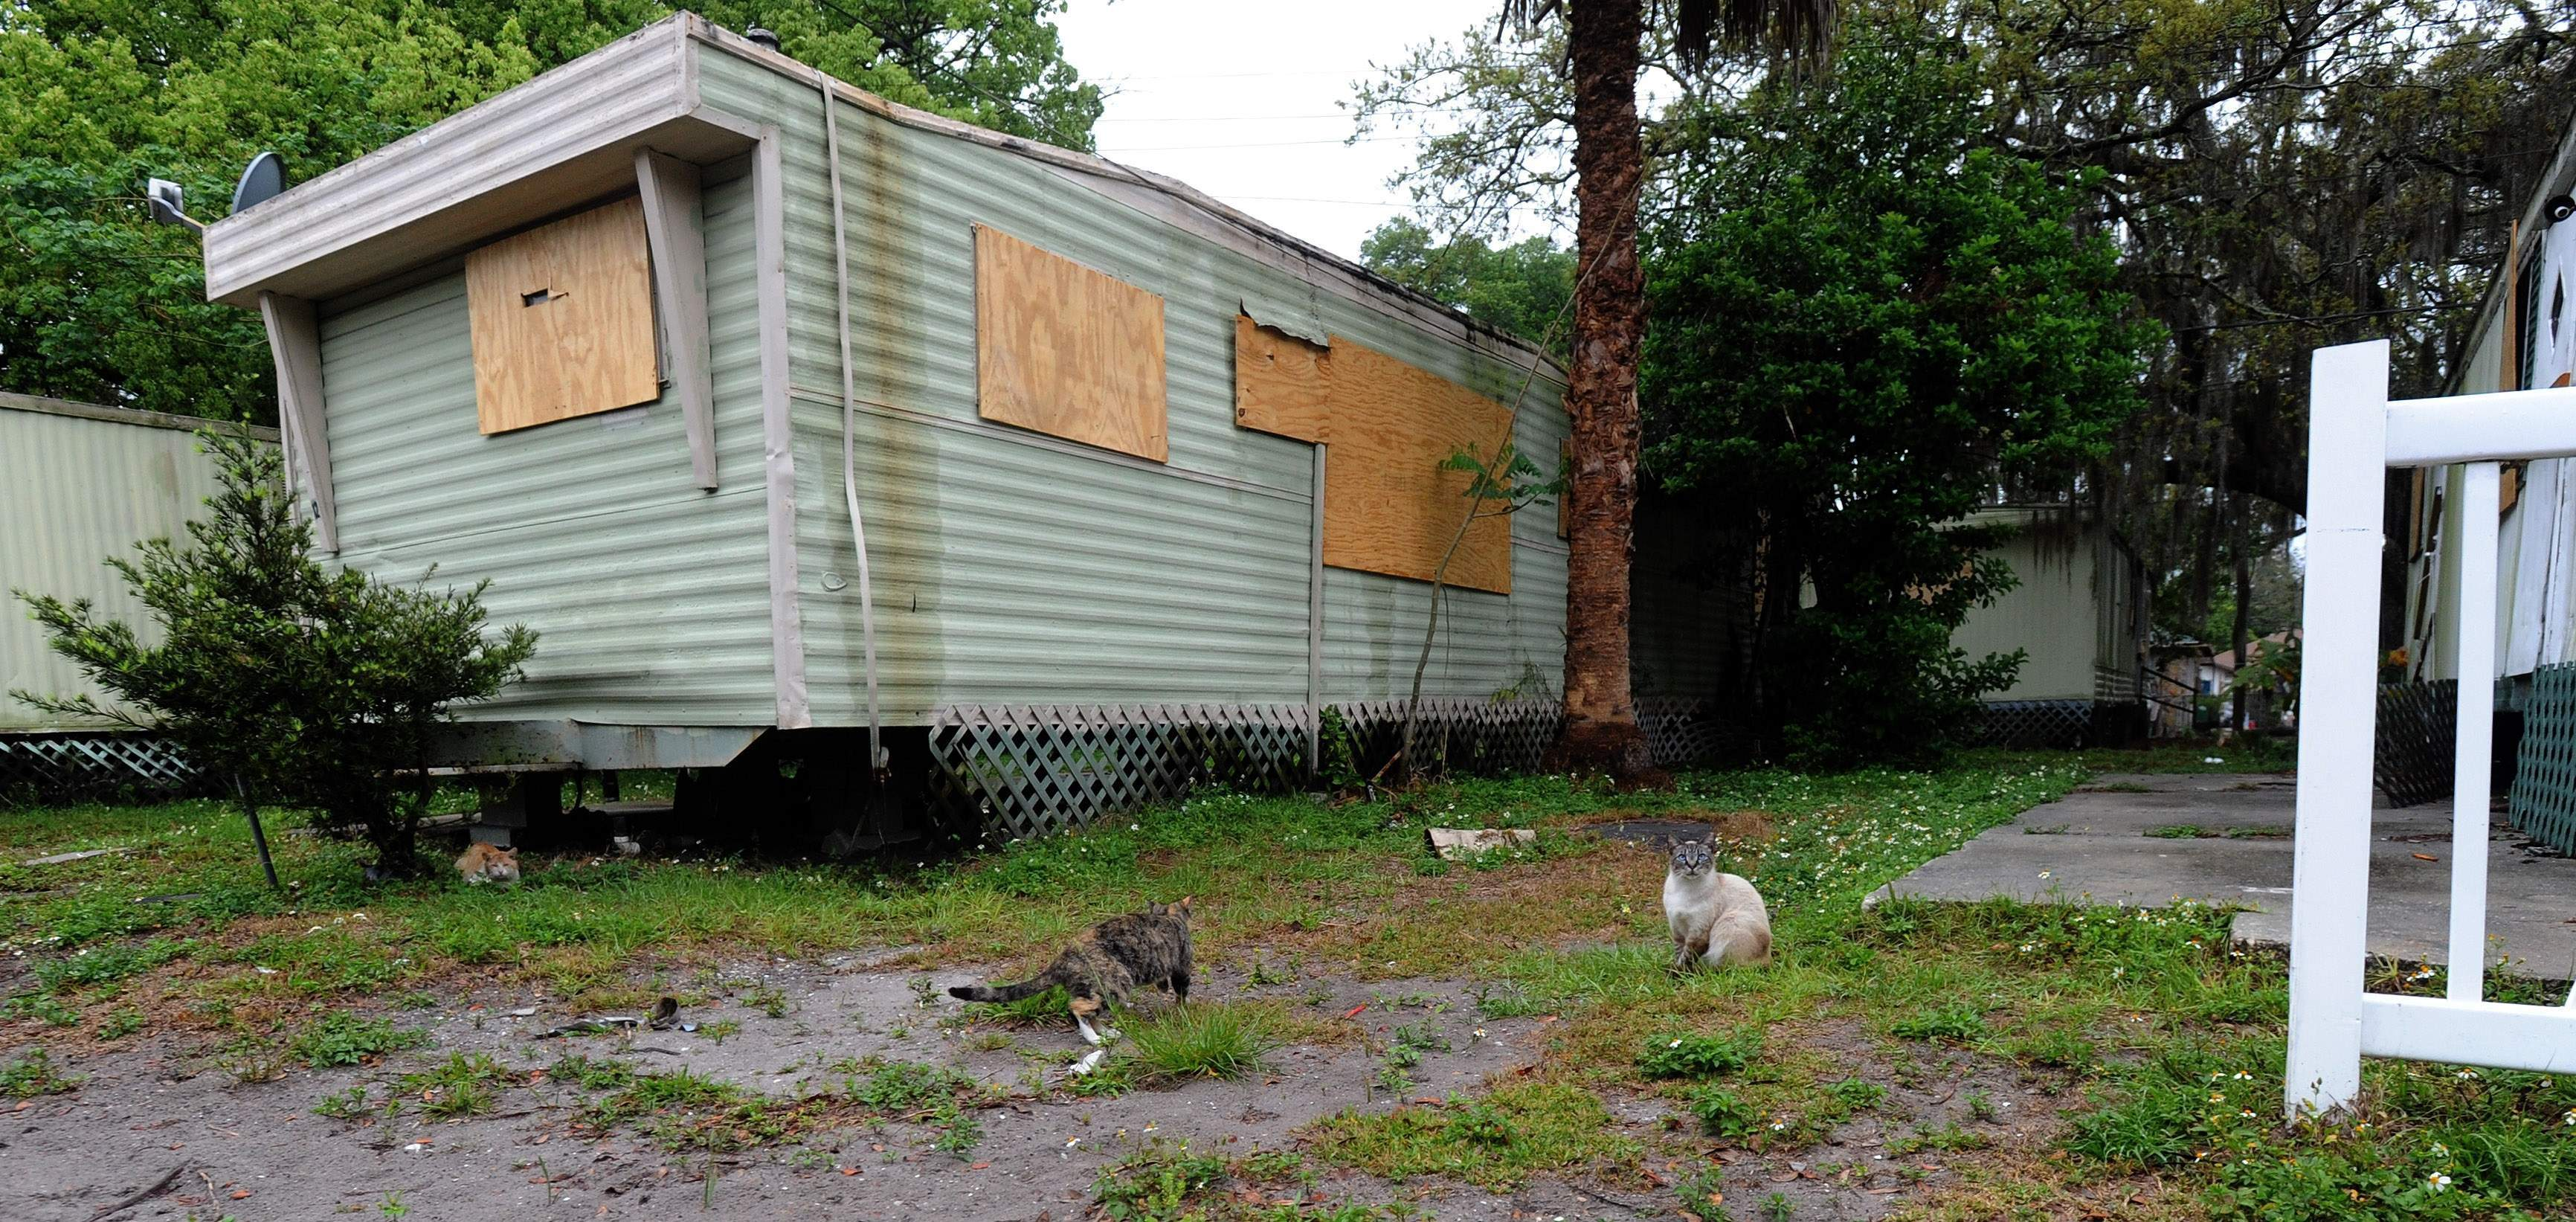 City Of Tampa Mobile Home Park Owner Face Off Over 13M